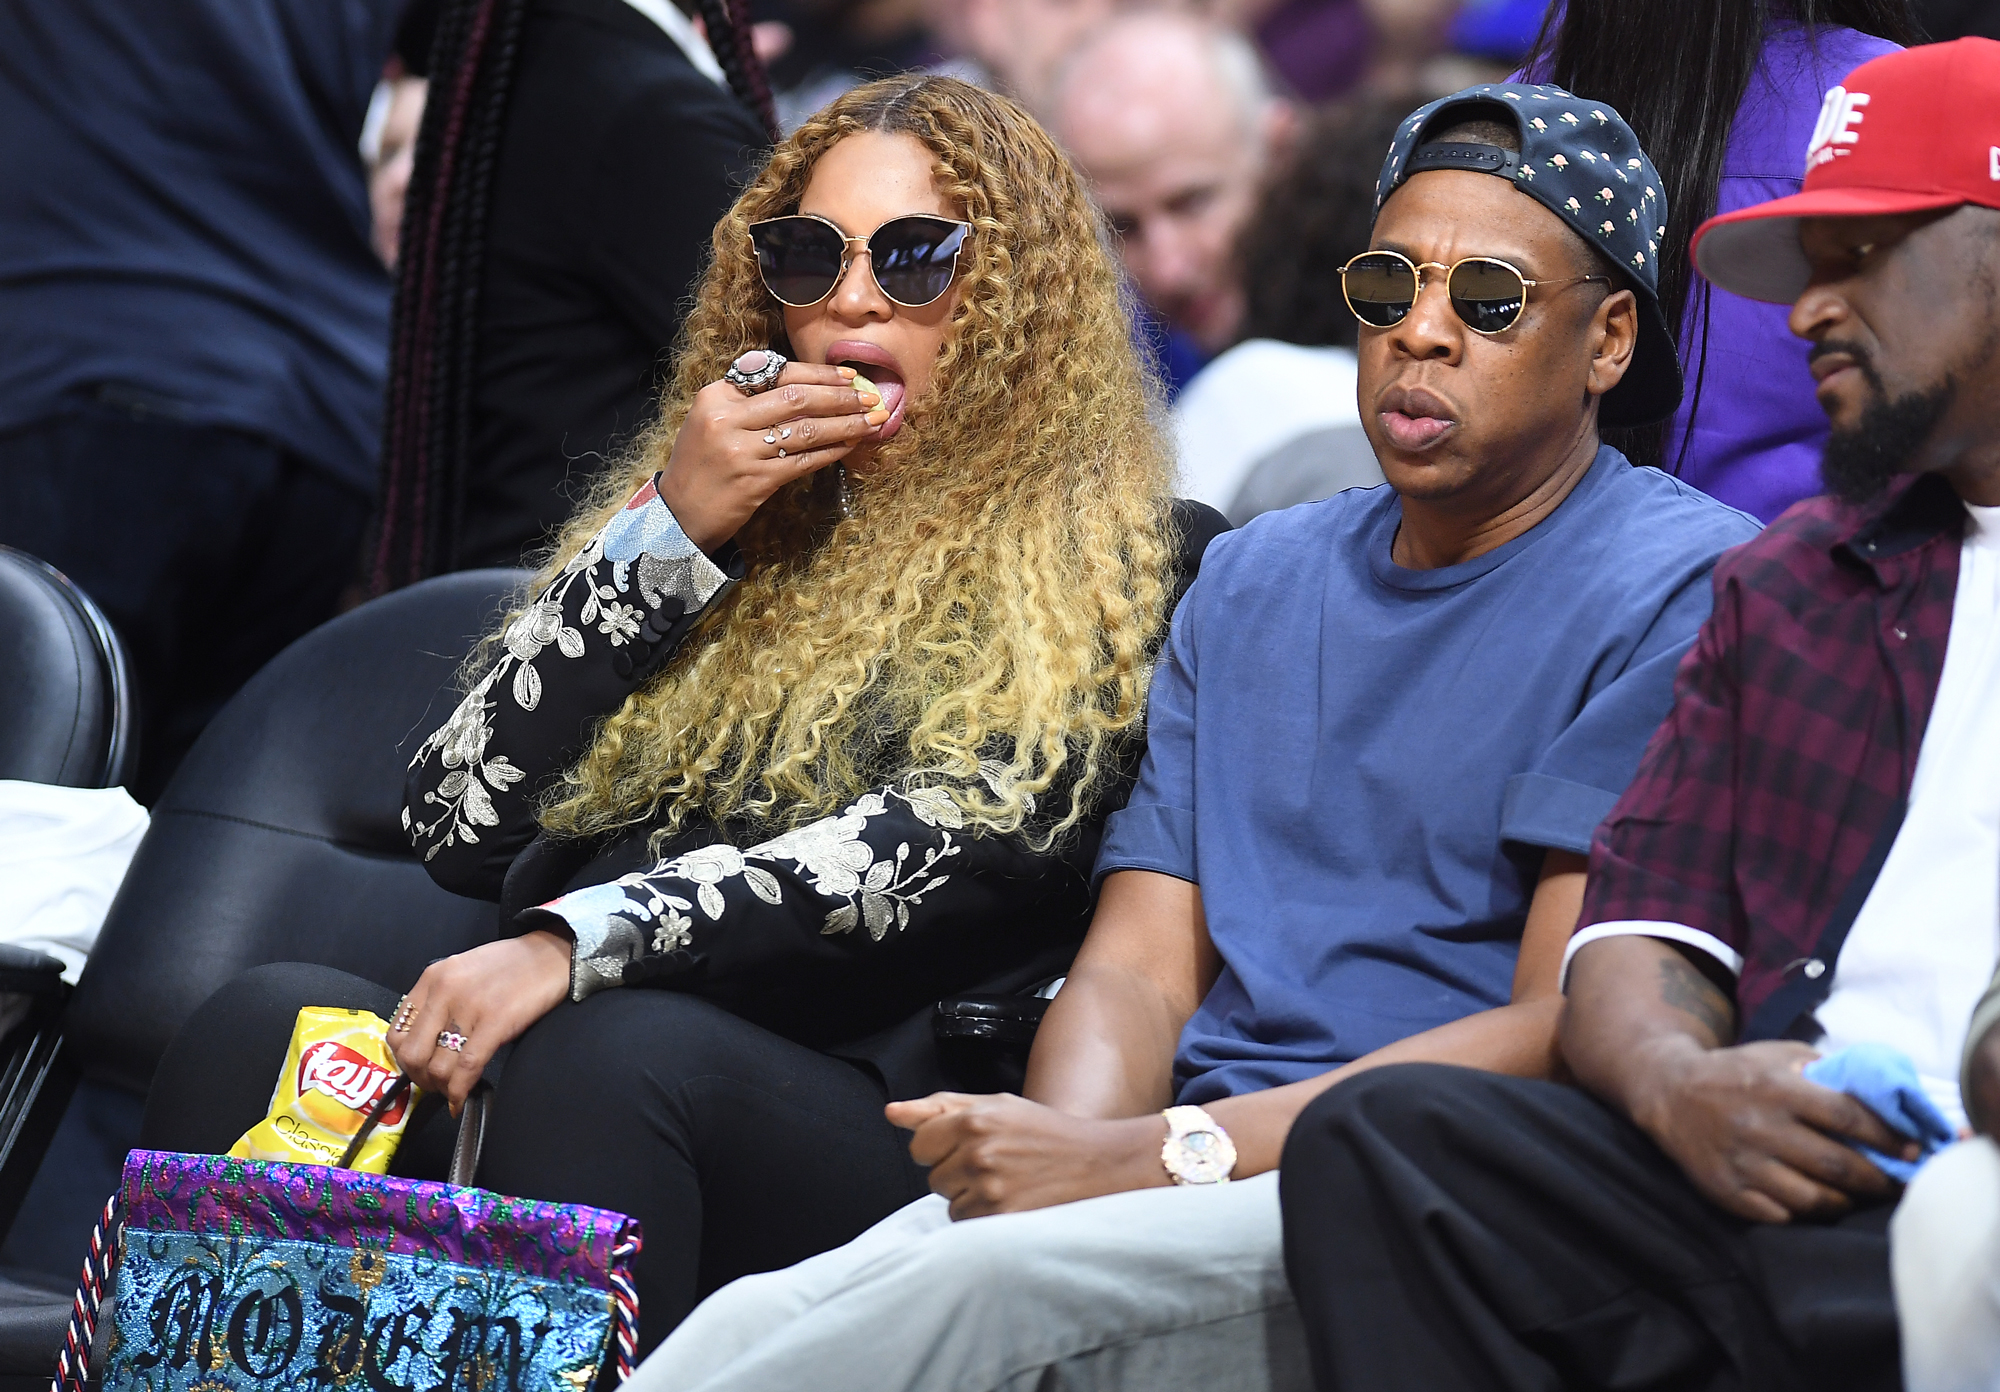 Beyonce Eating  Chips - Embed